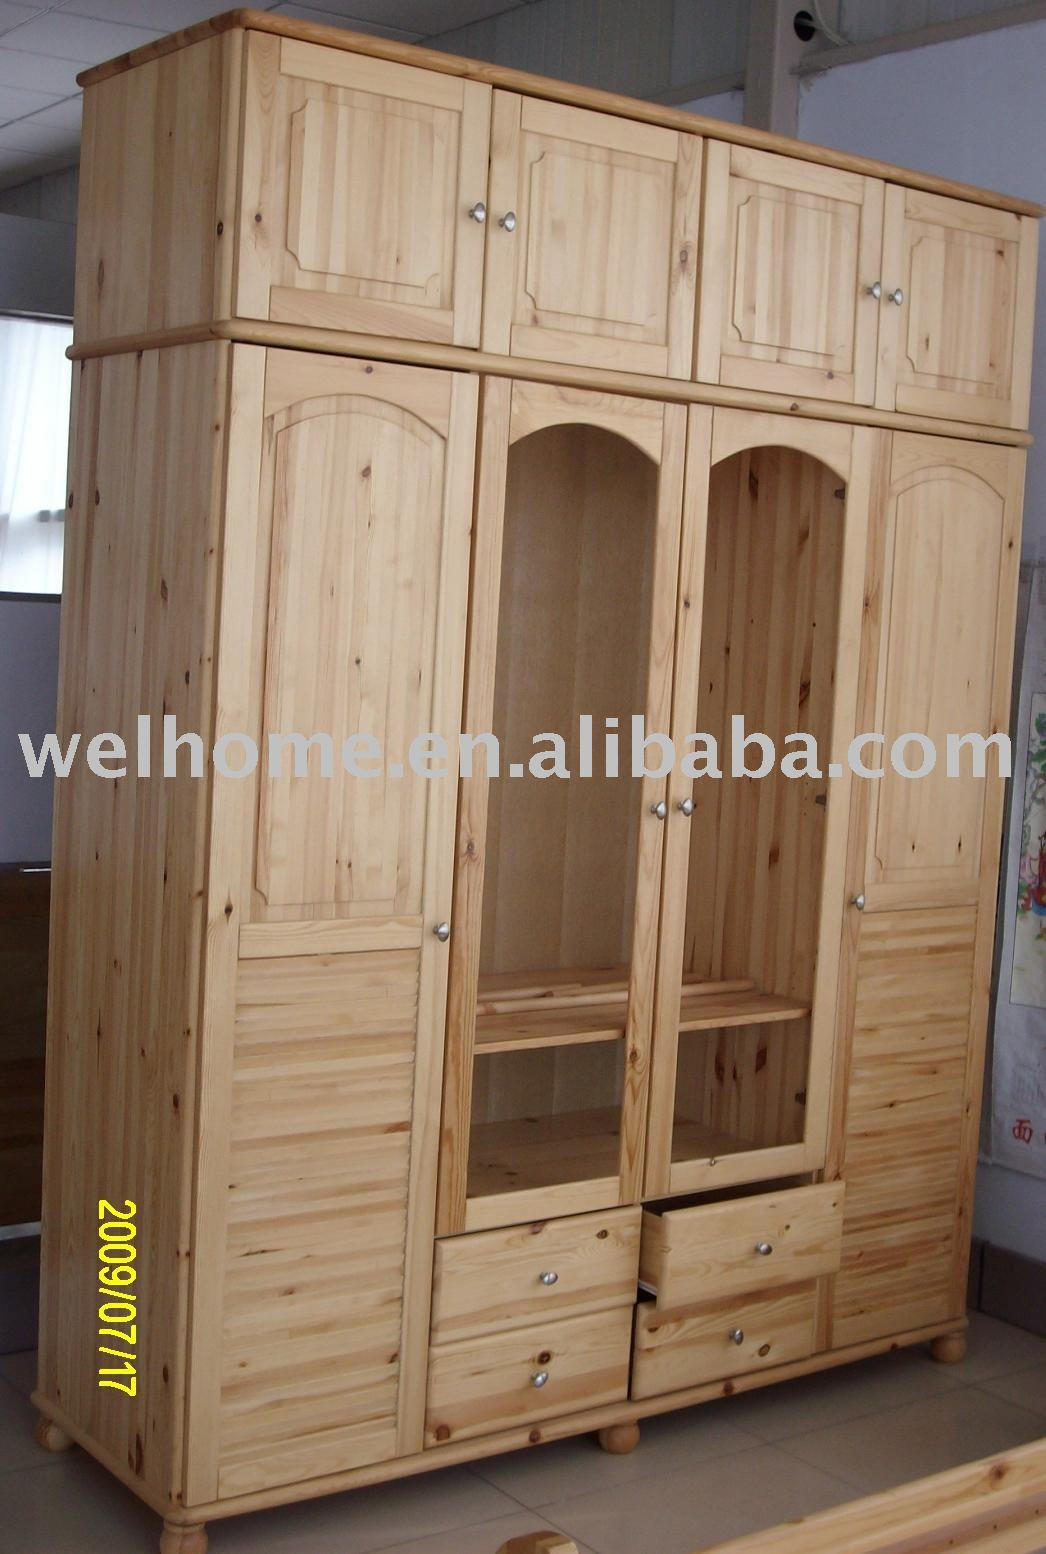 F8304 Wooden Armoire Clothes Wardrobe Wood Furniture Buy